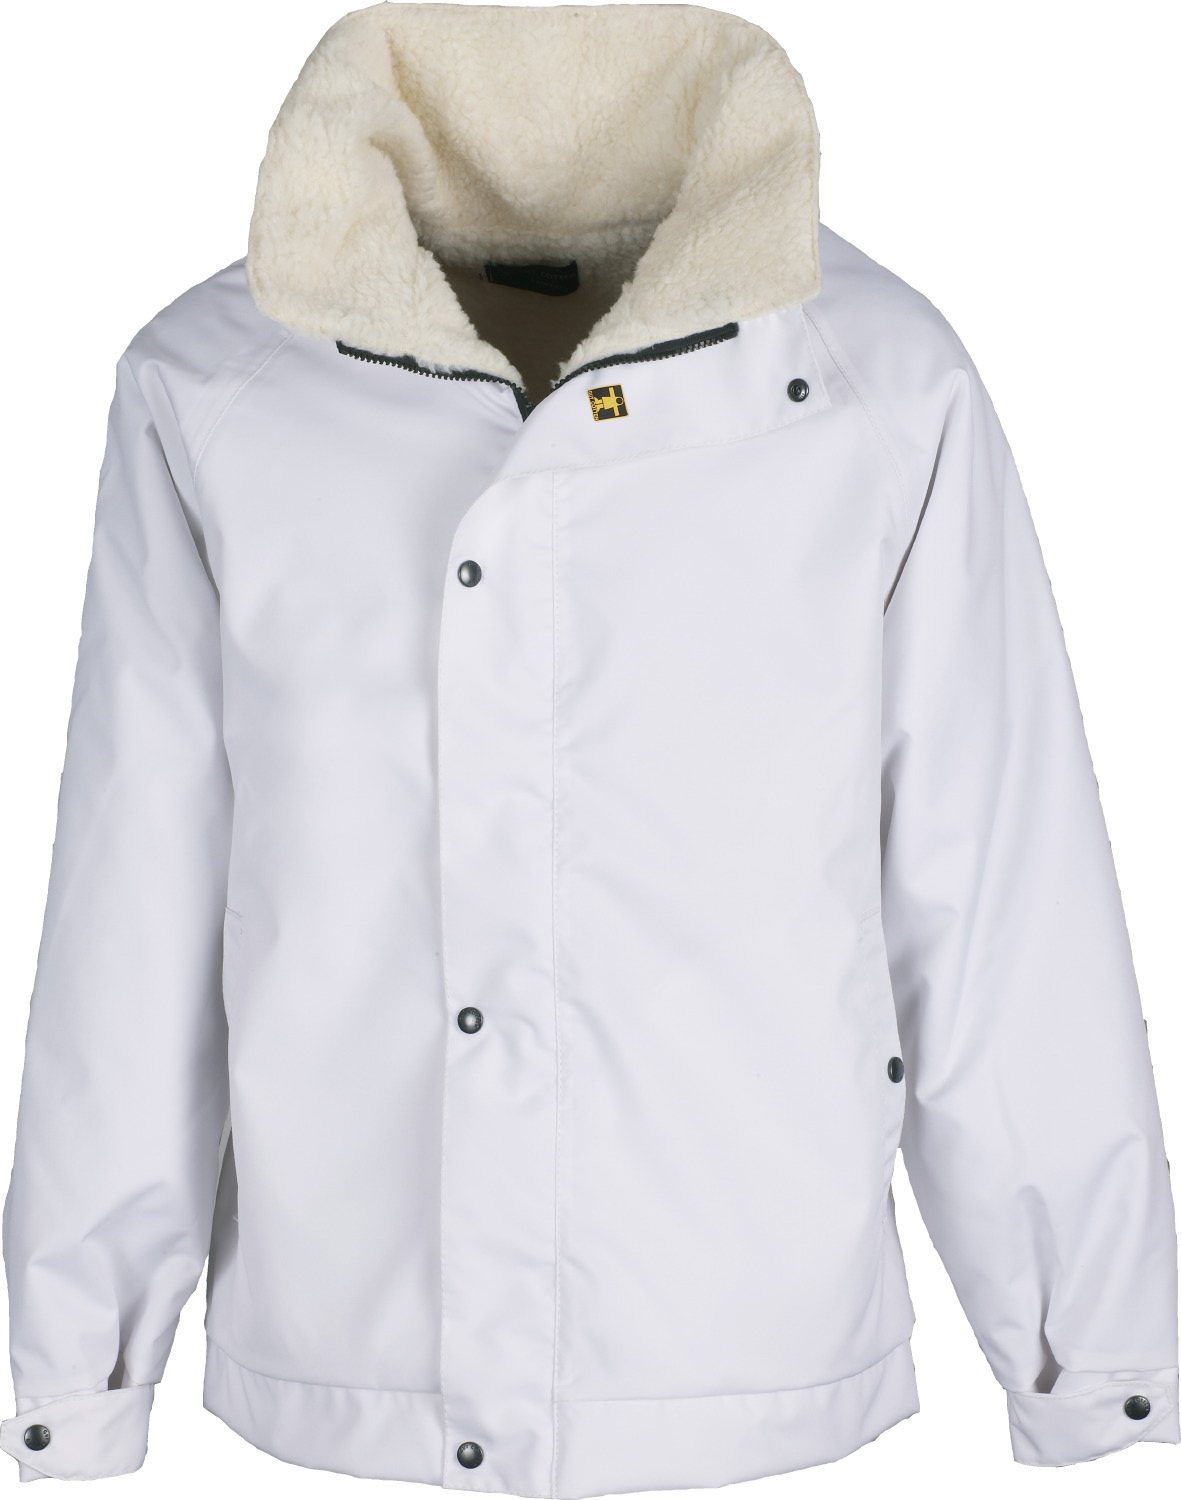 PAMPERO Jacket